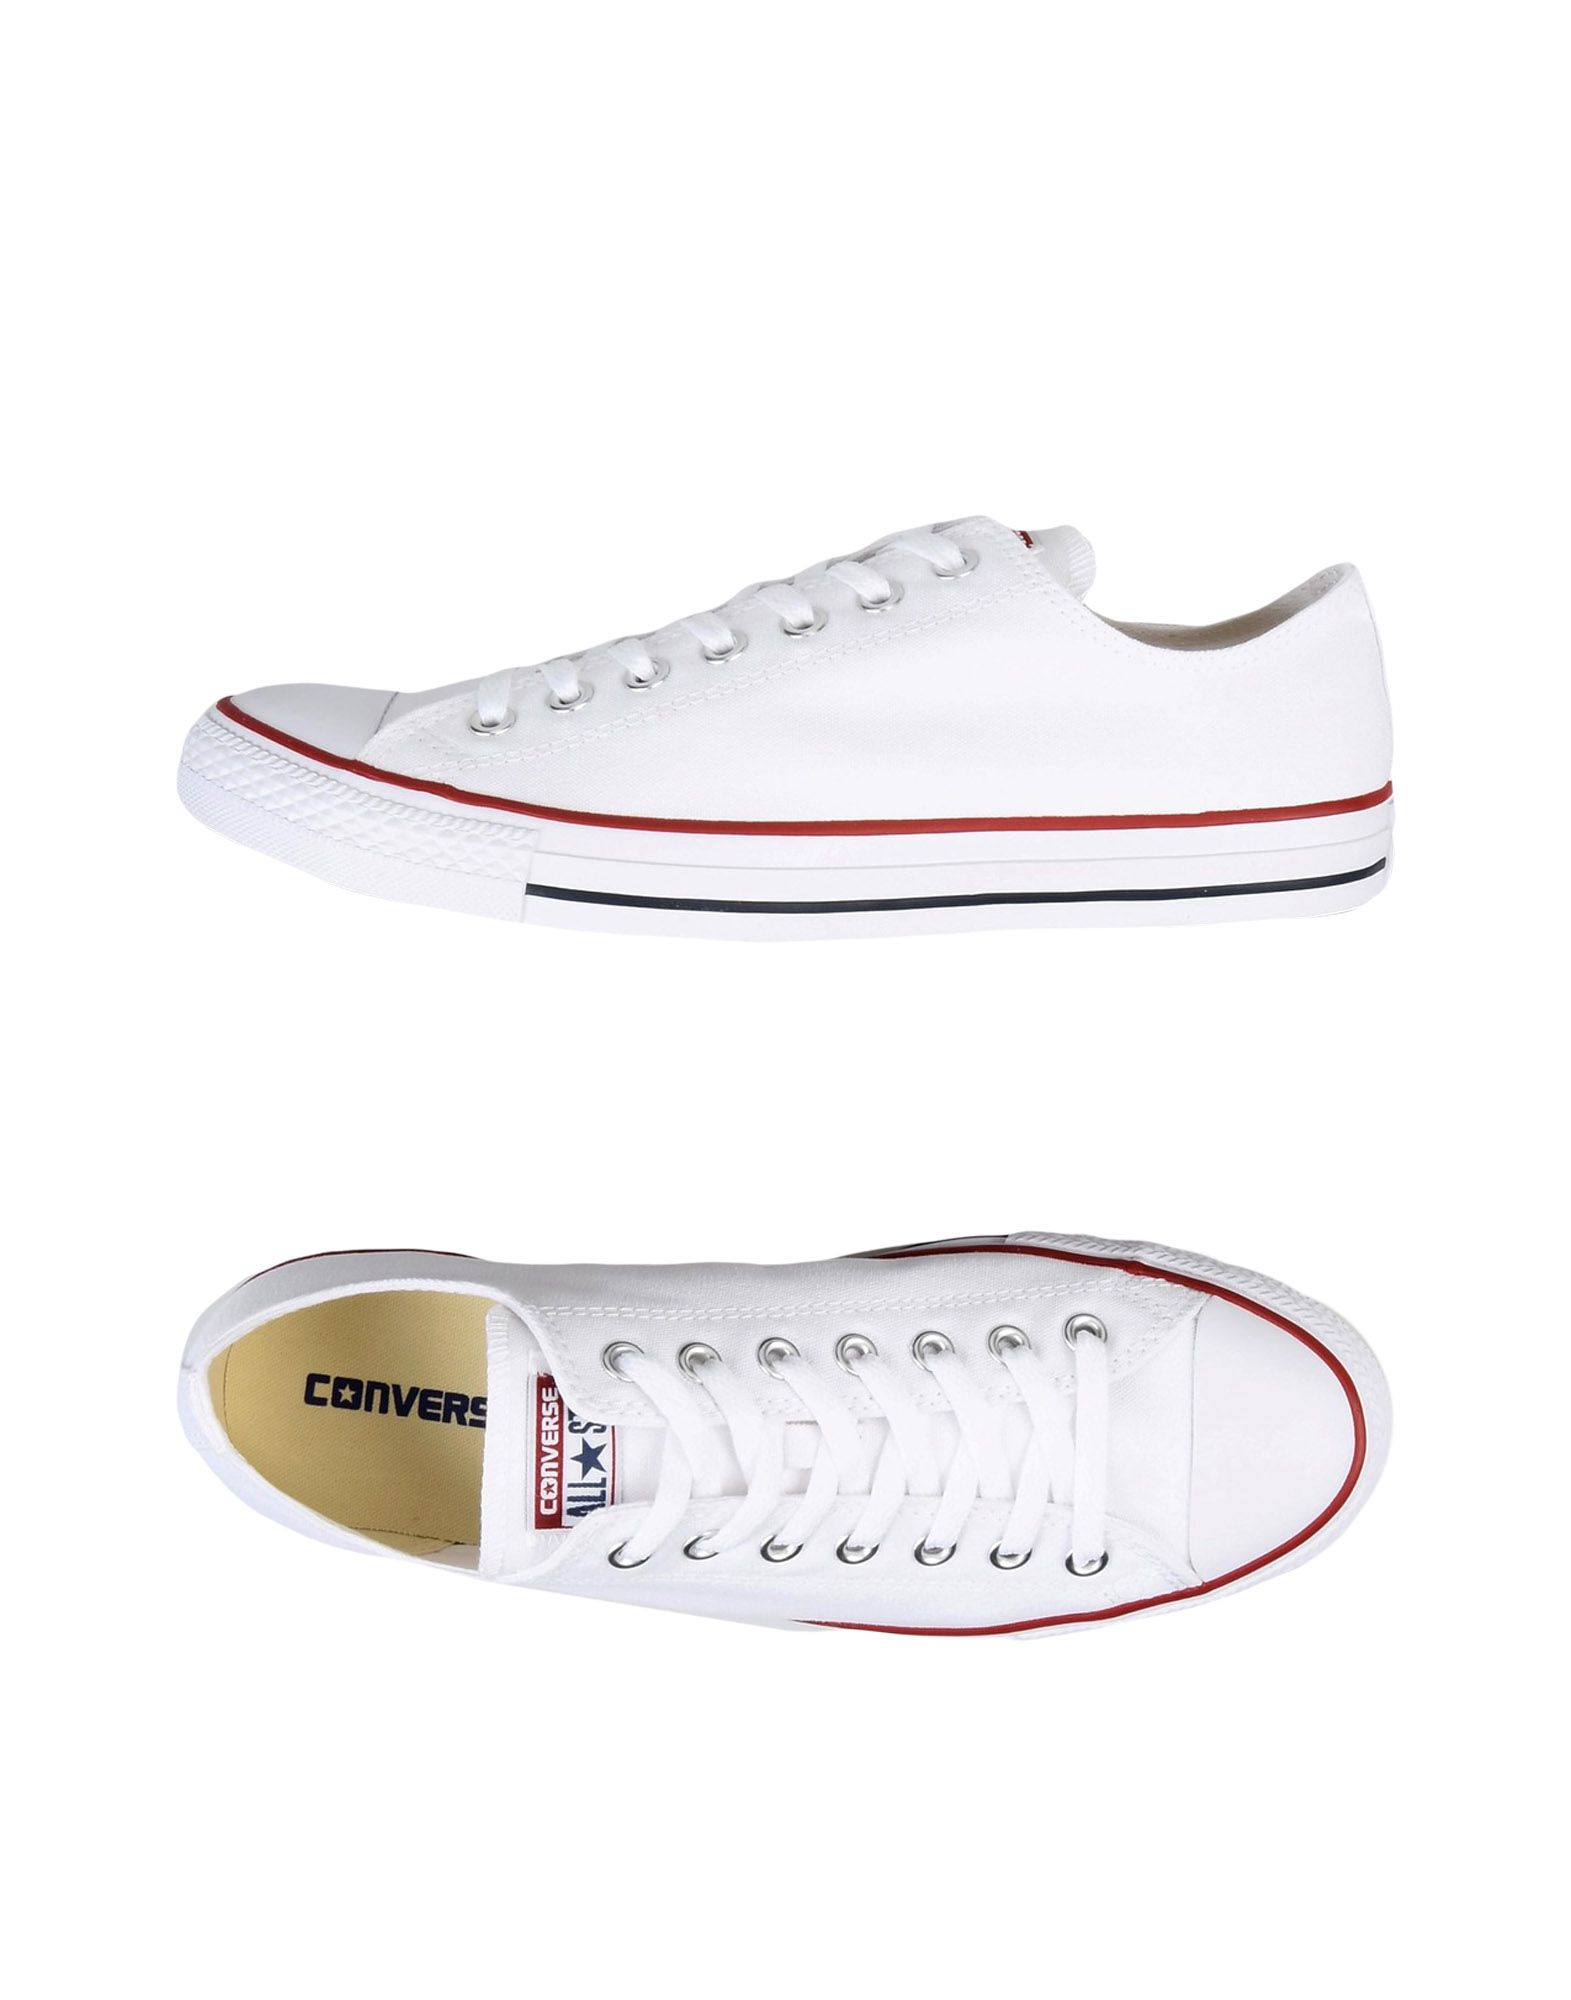 Baskets Converse All Star Ct As Ox Canvas Core - Homme - Baskets Converse All Star  Blanc Confortable et belle